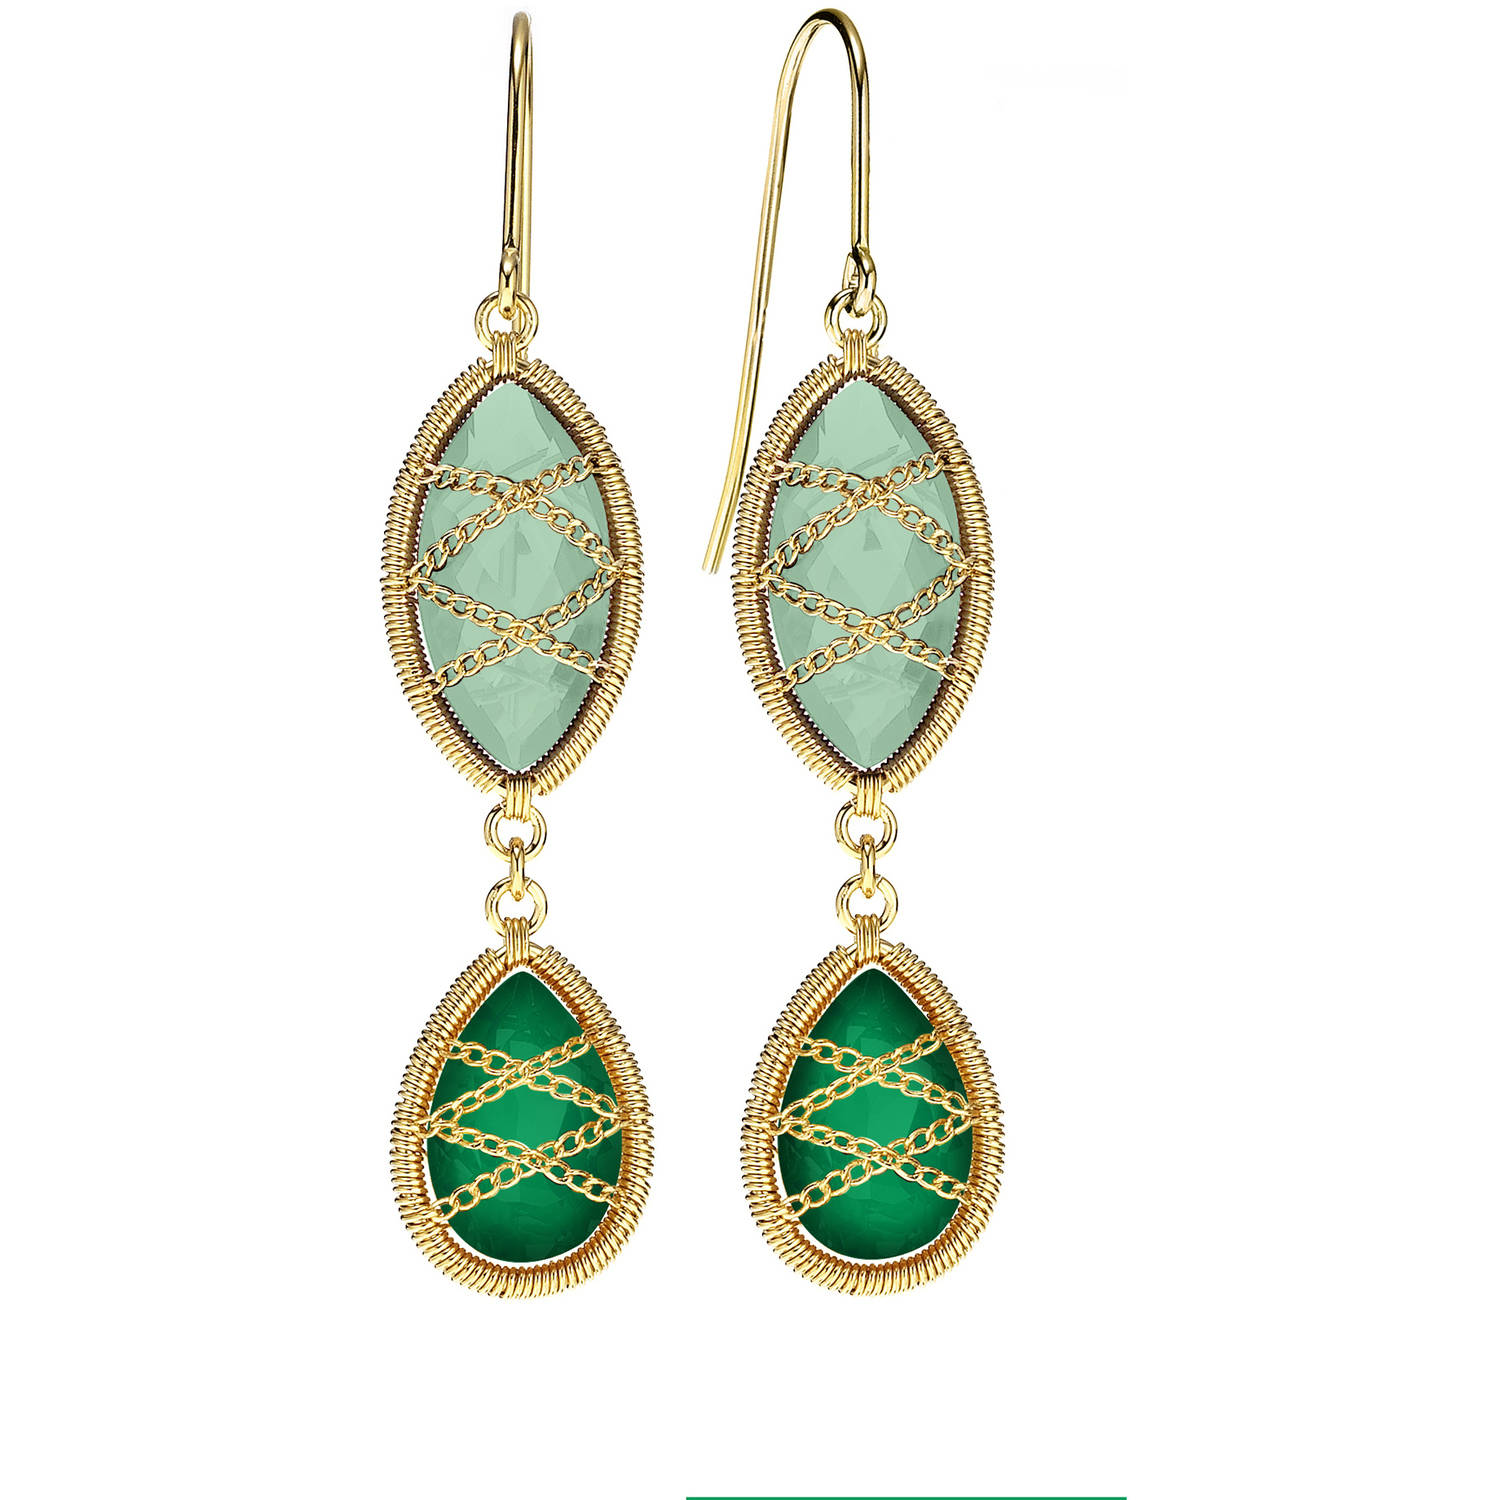 Image of 5th & Main 18kt Gold over Sterling Silver Hand-Wrapped Double Drop Chalcedony and Peridot Stone Earrings